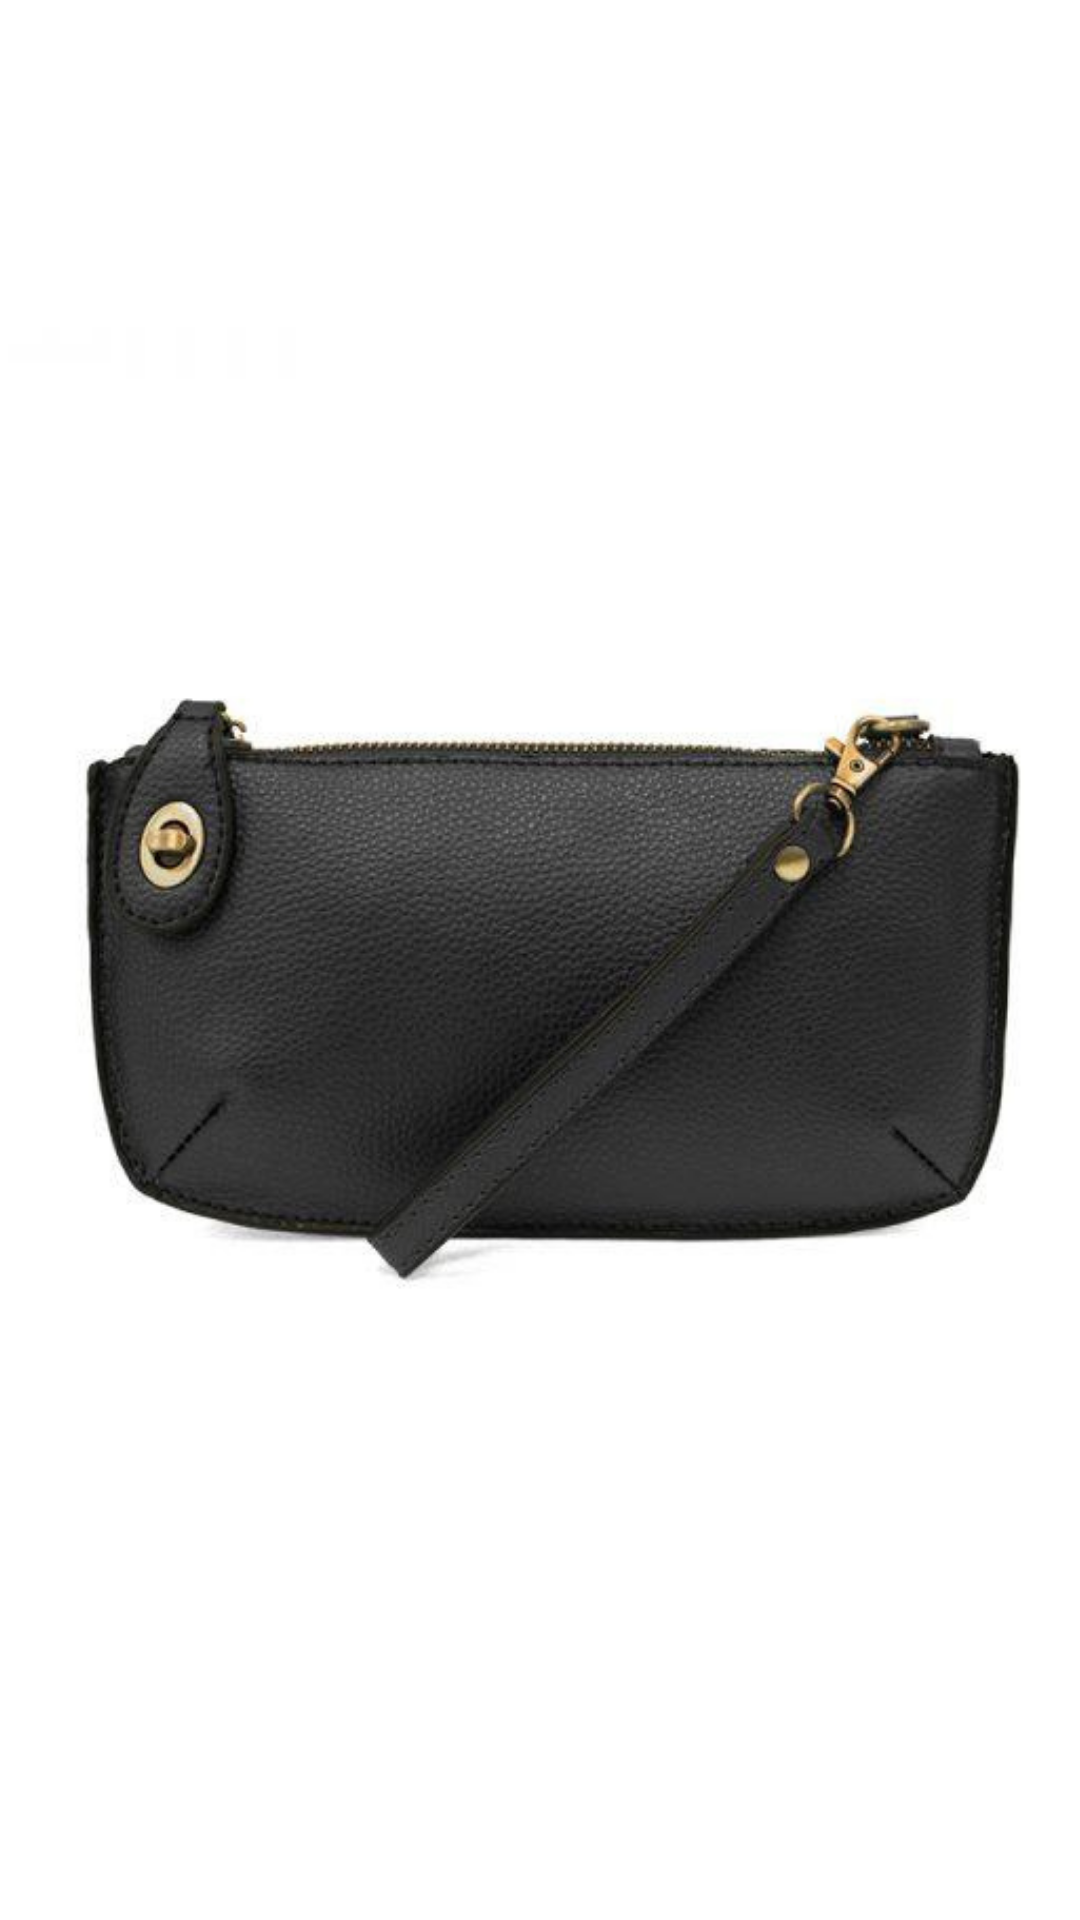 Joy Black Crossbody